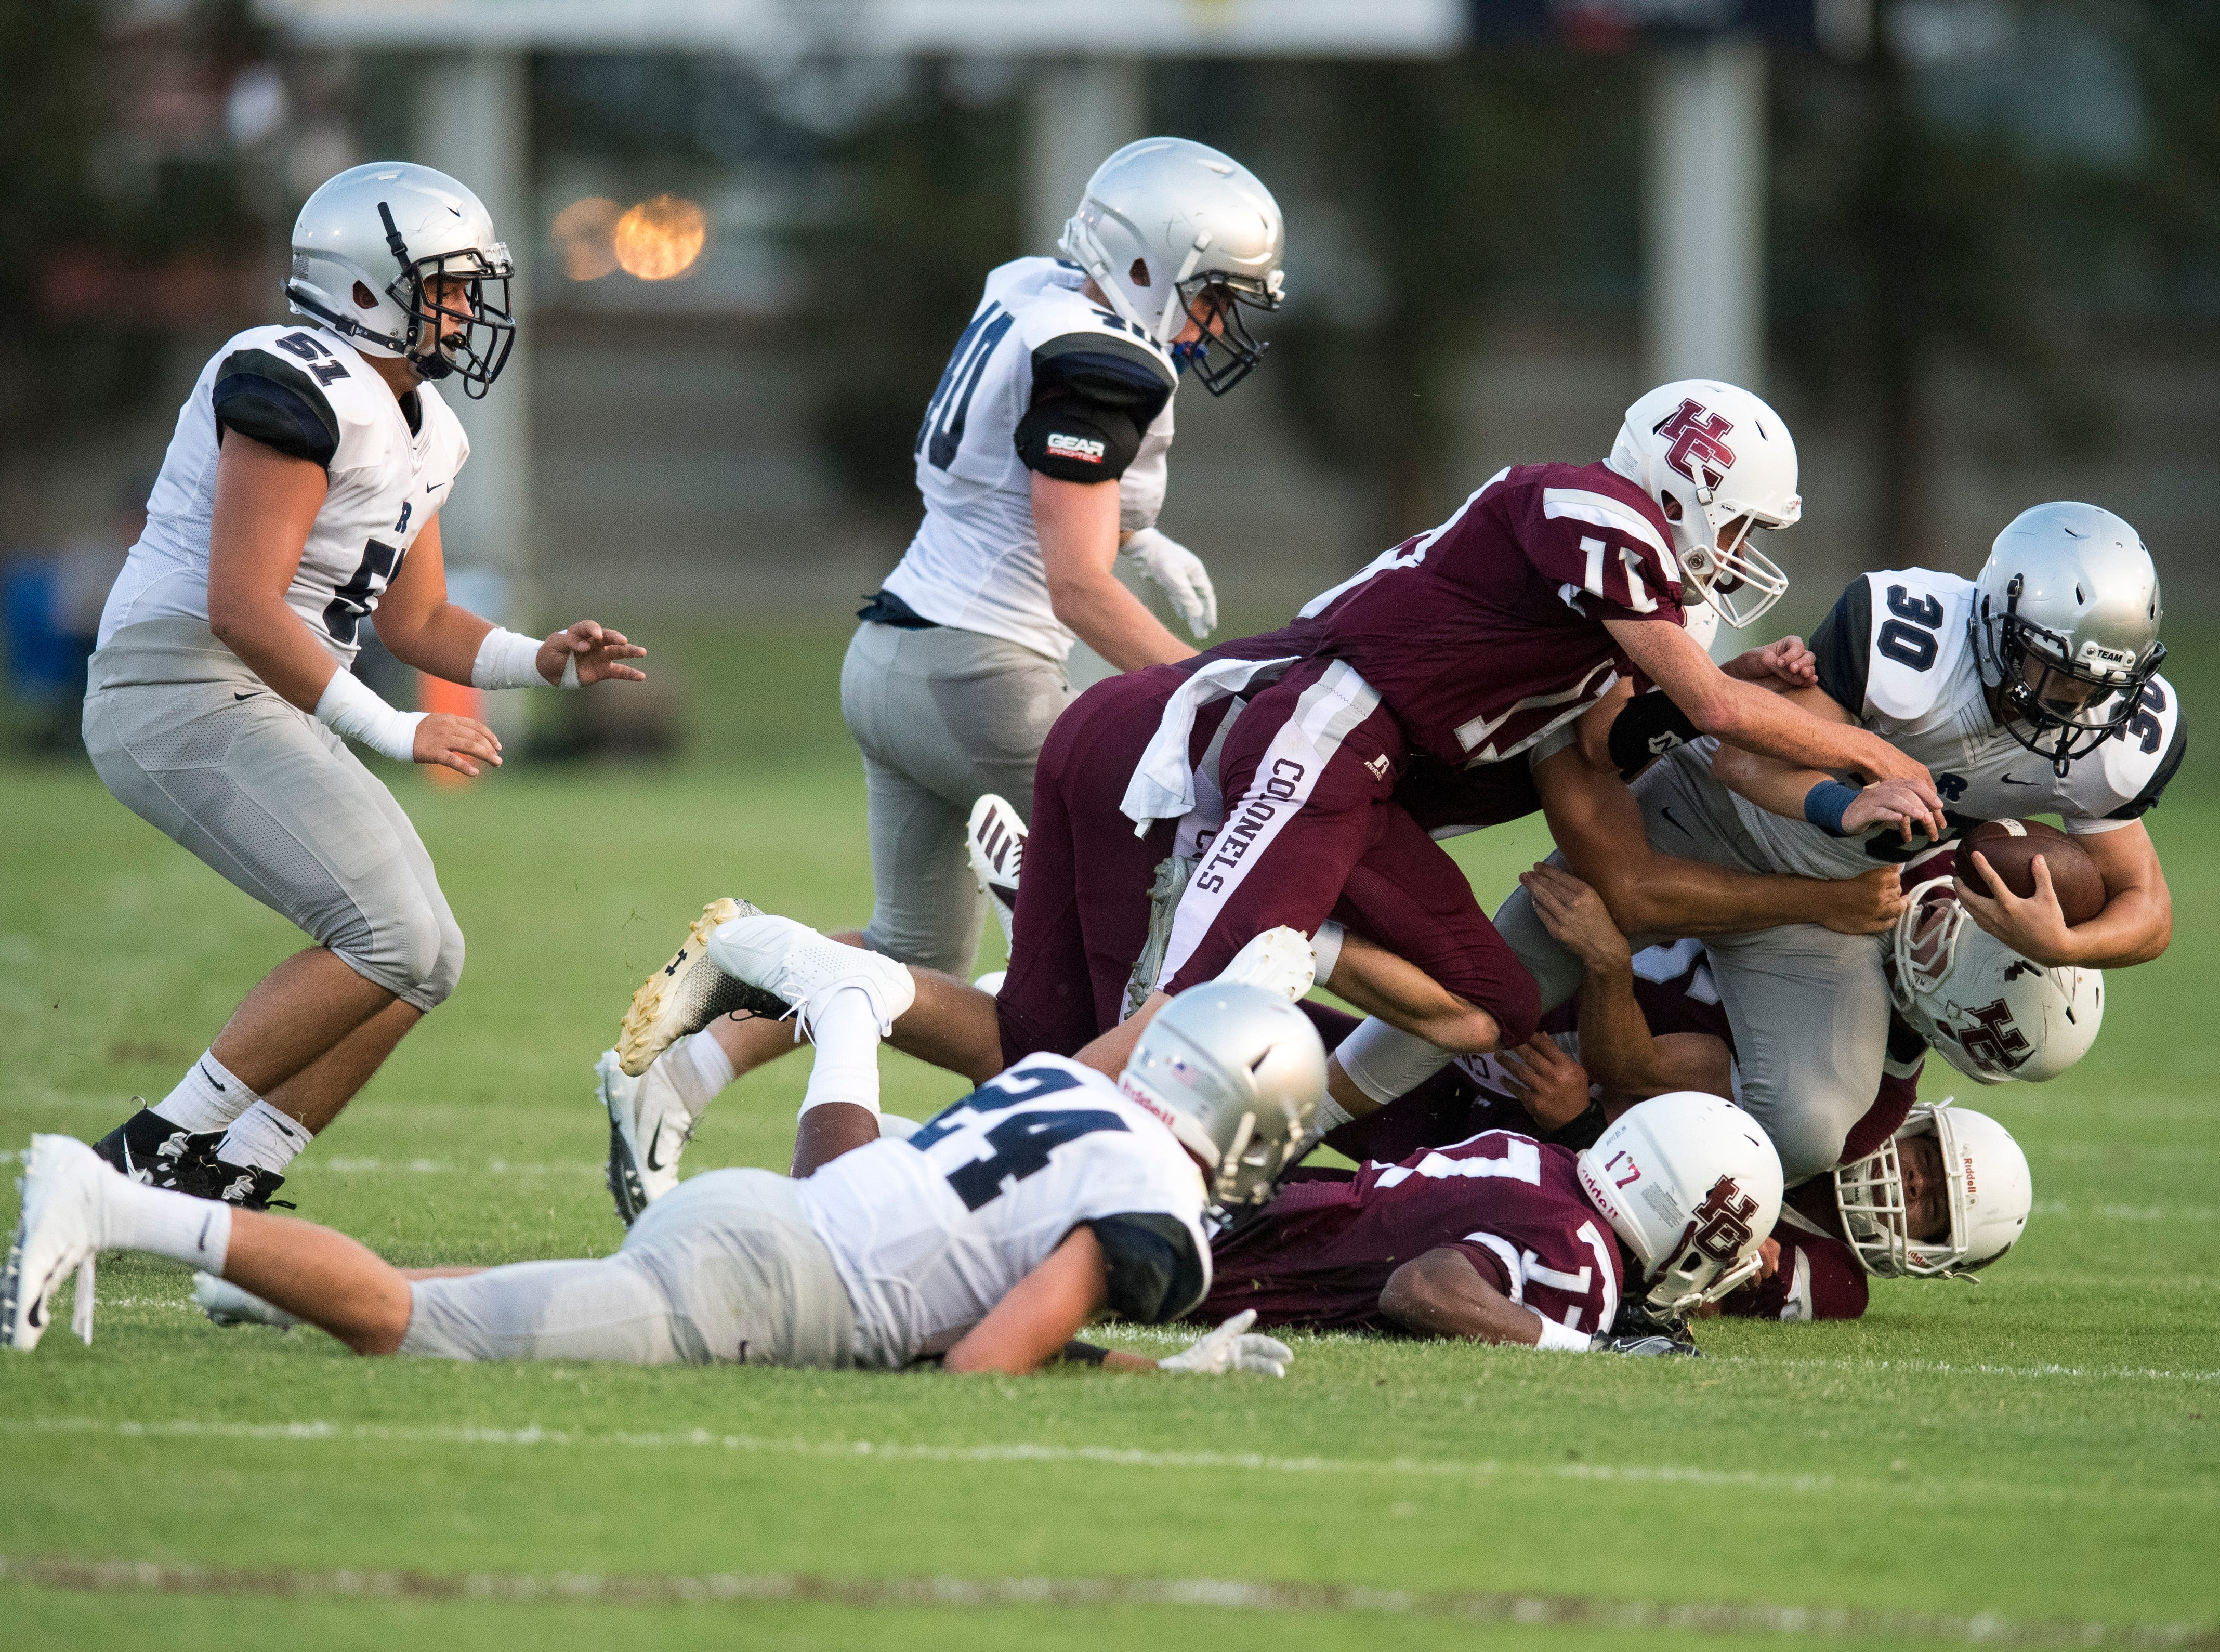 Reitz's Alex Mitchell (30)  is taken down by Henderson Colonels defense during the Reitz vs Henderson County game at Colonel Stadium Friday, August 17, 2018. The Panthers defeated the Colonels 41-35 in the season opening game.